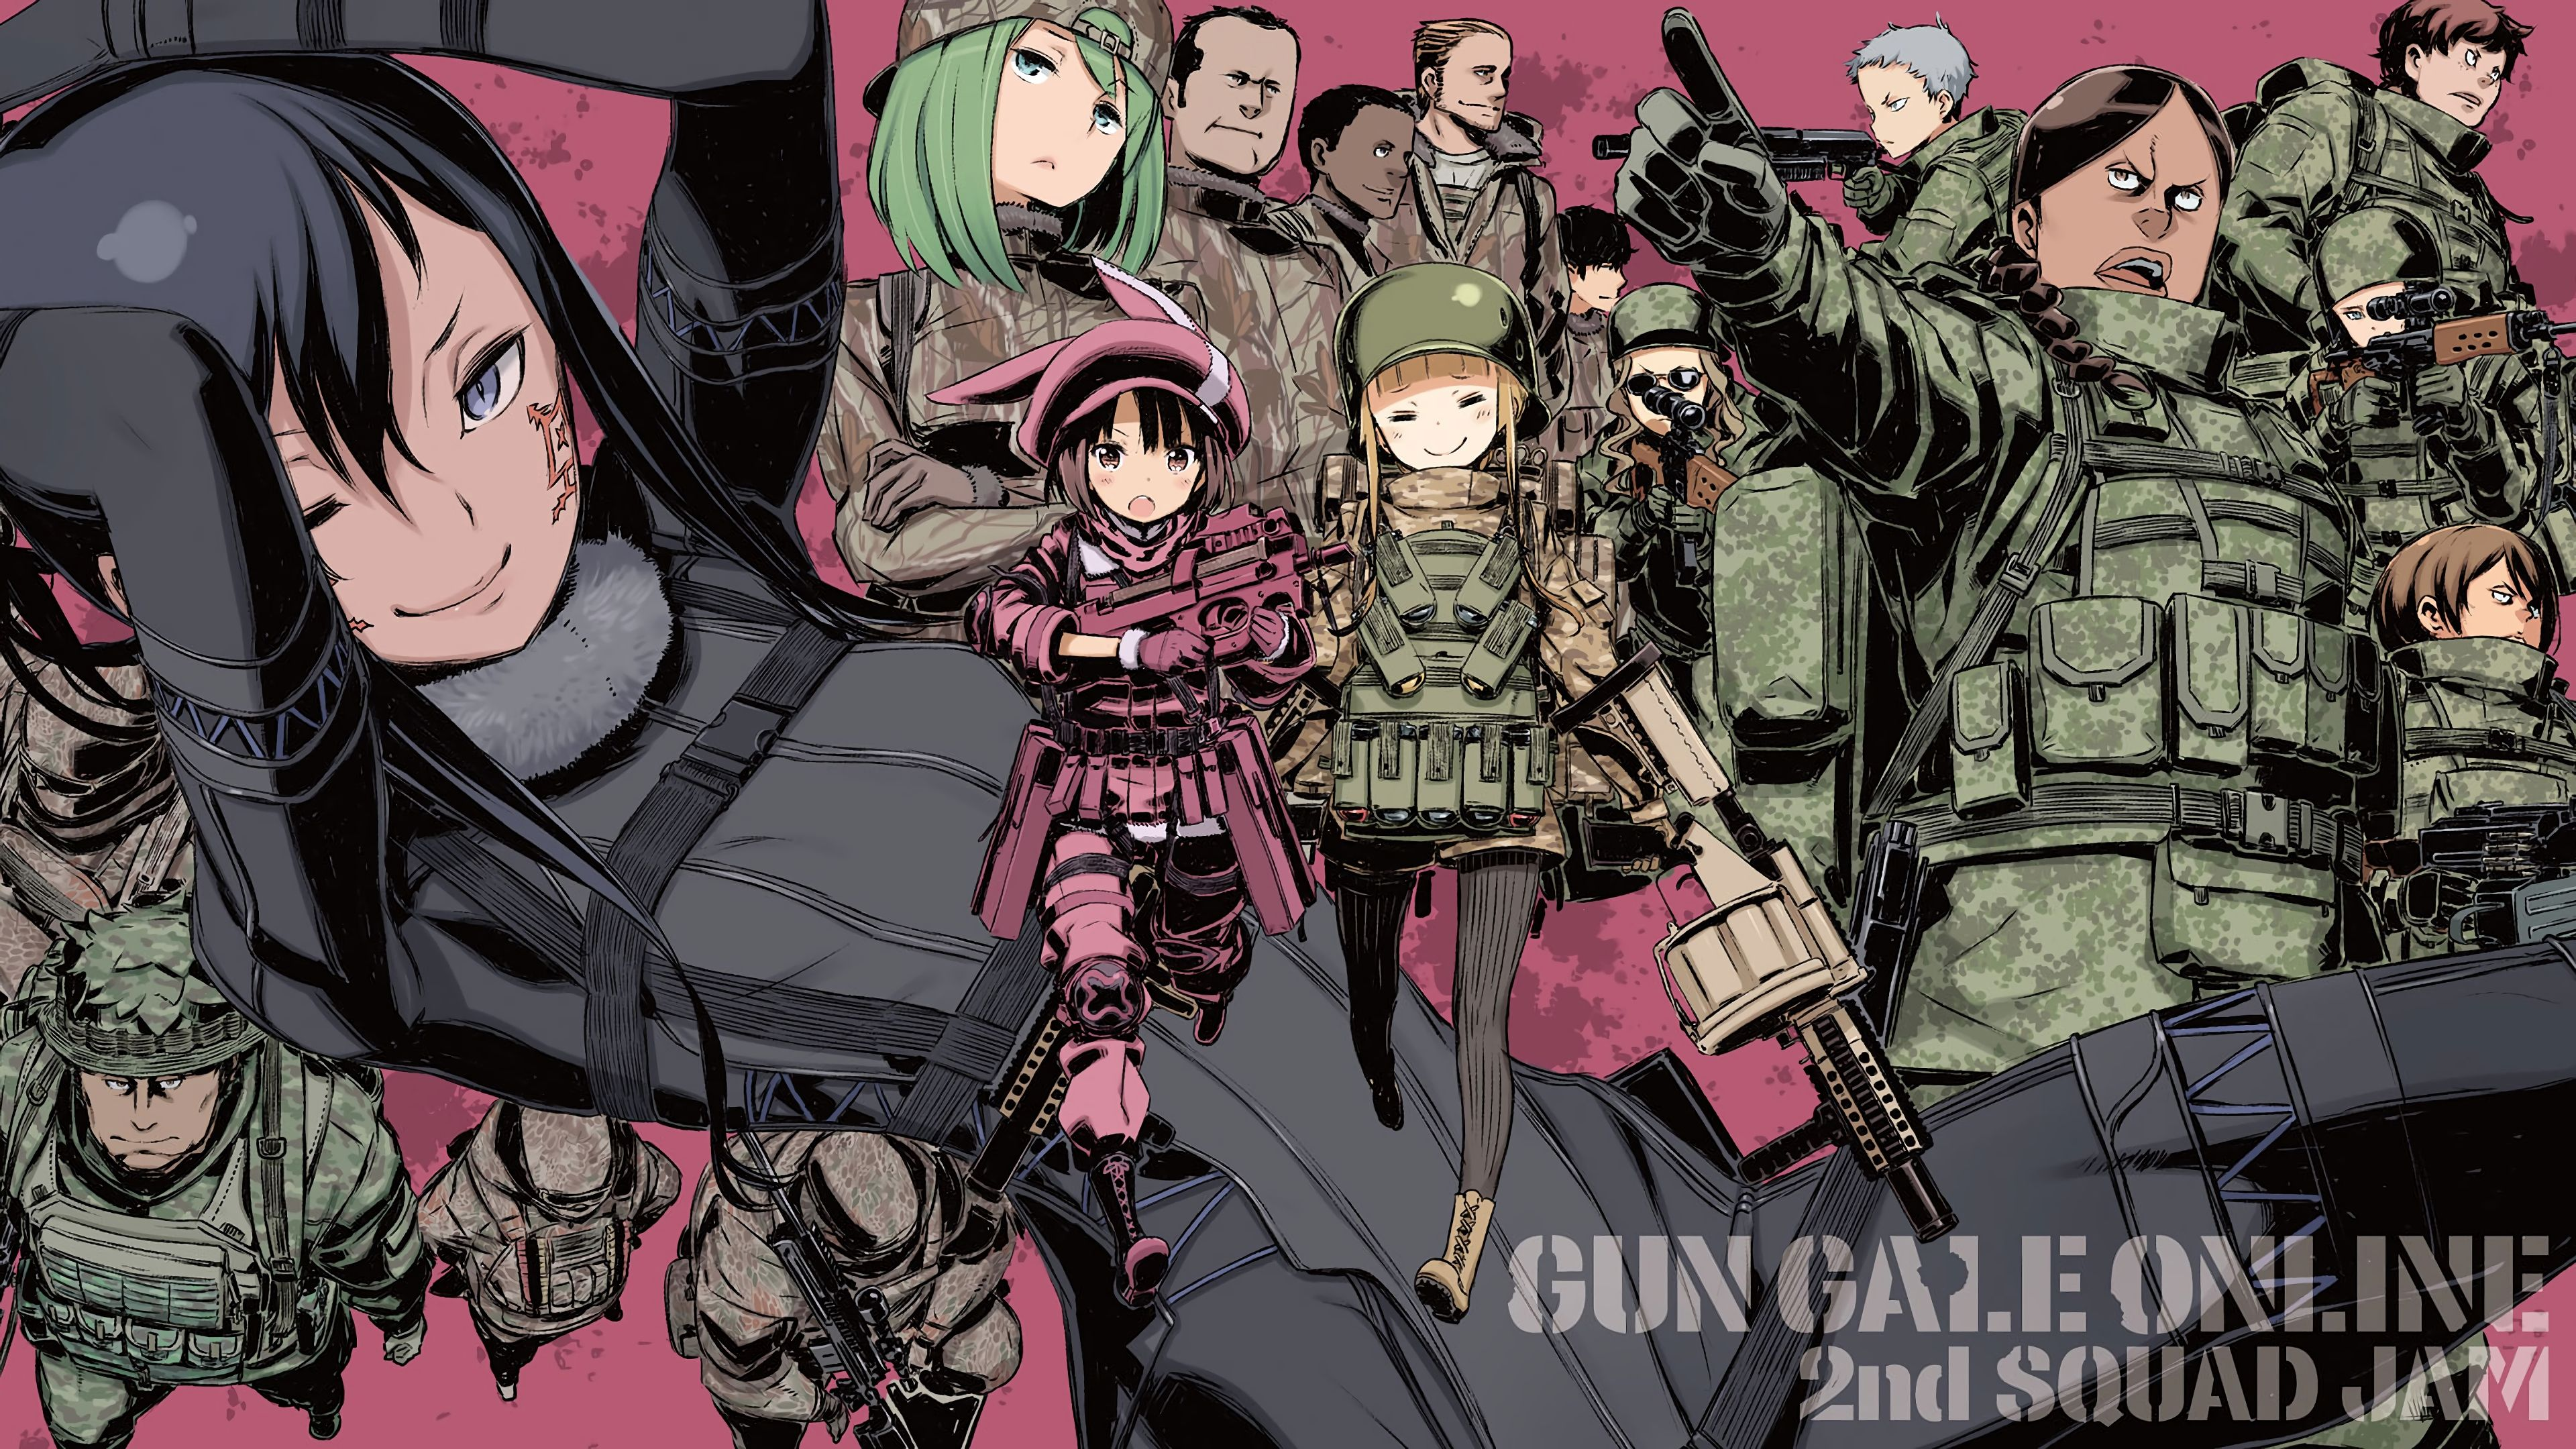 SAO Alternative Gun Gale Online wallpapers 24